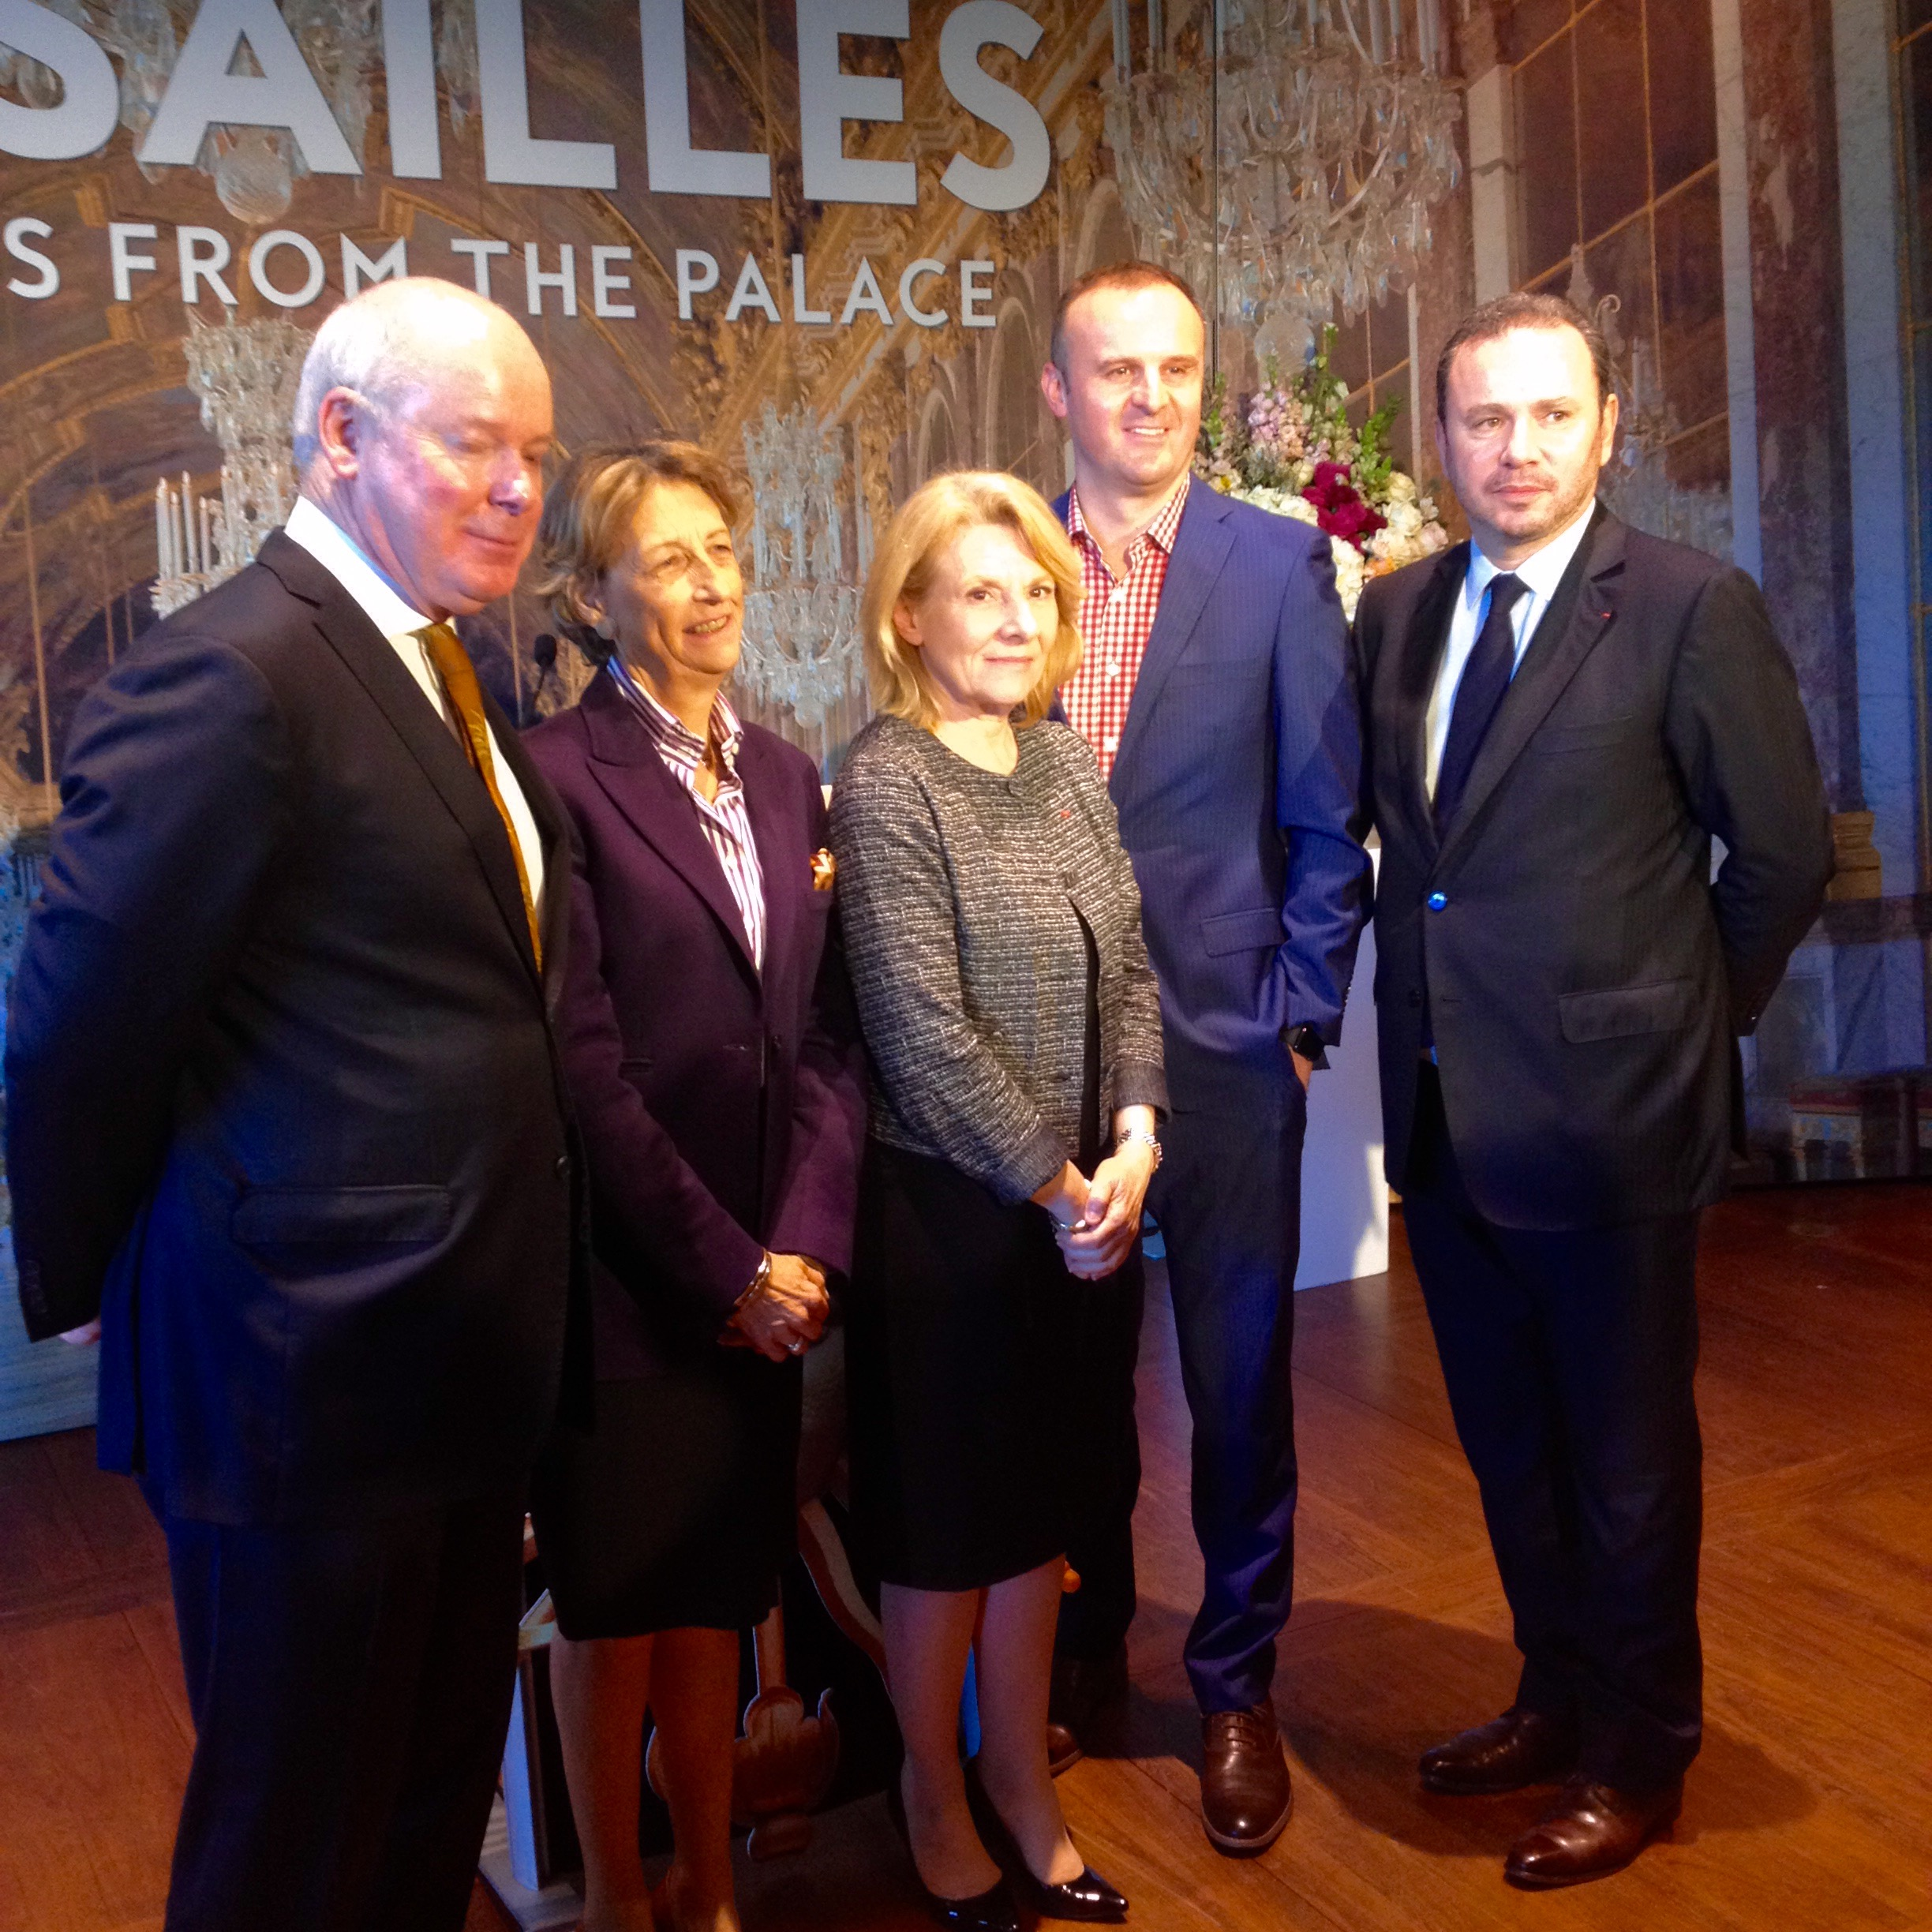 Gerard Vaughan, Beatrix Saule, Catherine Pegard, Andrew Barr and Christophe Lecourtier